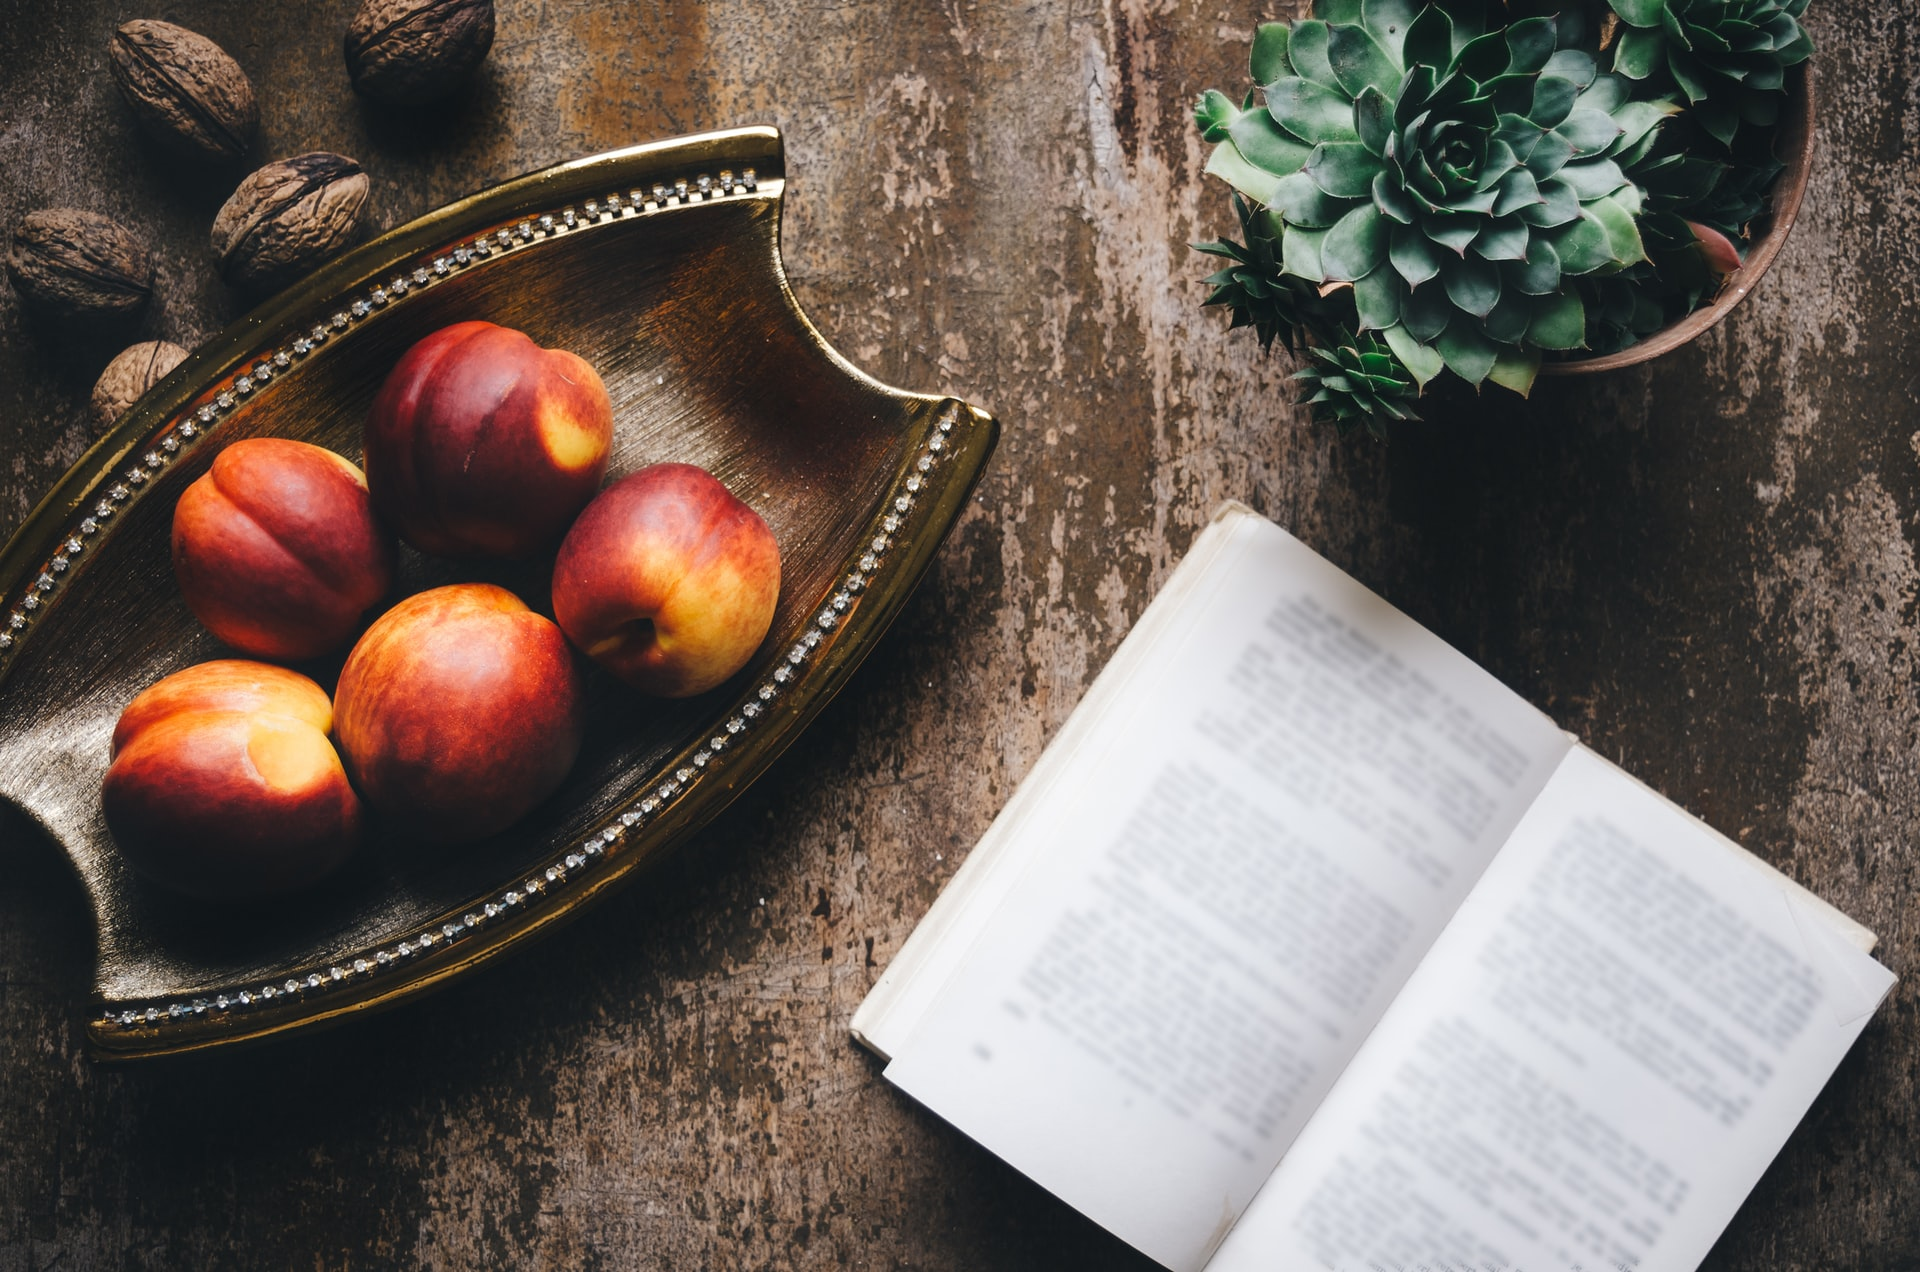 Food Symbolism in Literature | Paint the Town Read – Bhavya Nayak